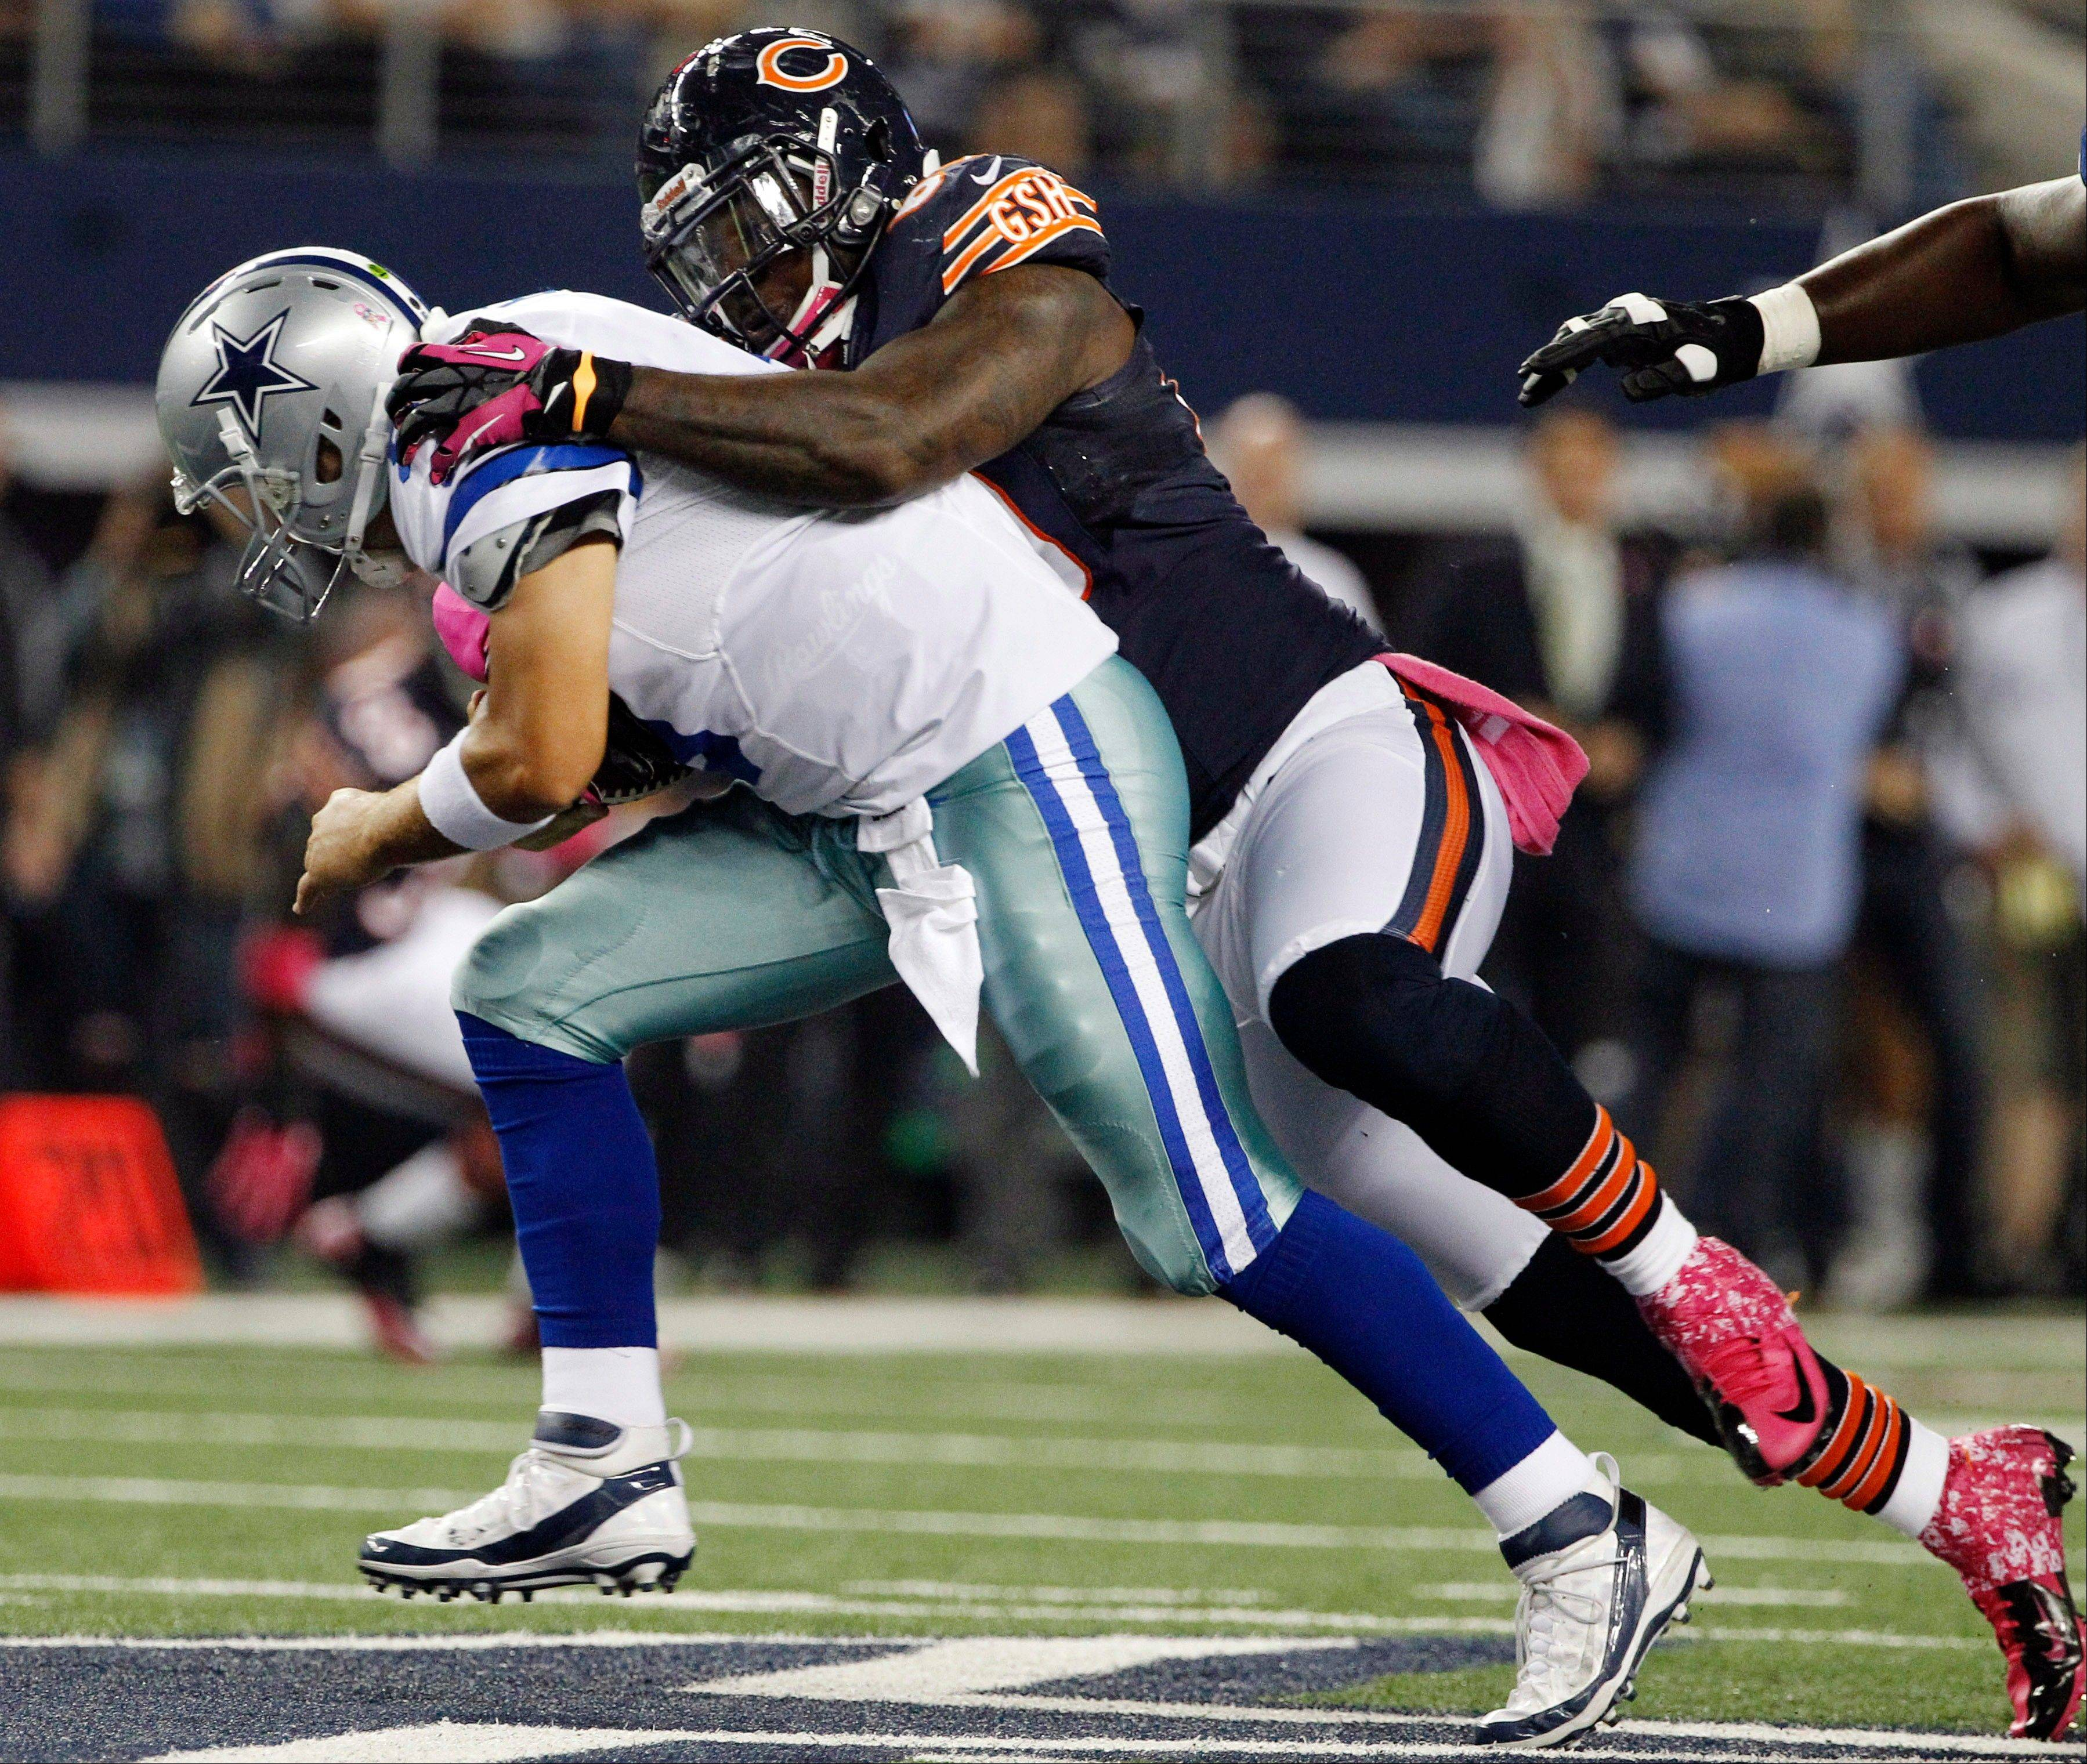 Chicago Bears defensive tackle Henry Melton sacks Dallas Cowboys quarterback Tony Romo during the first half.